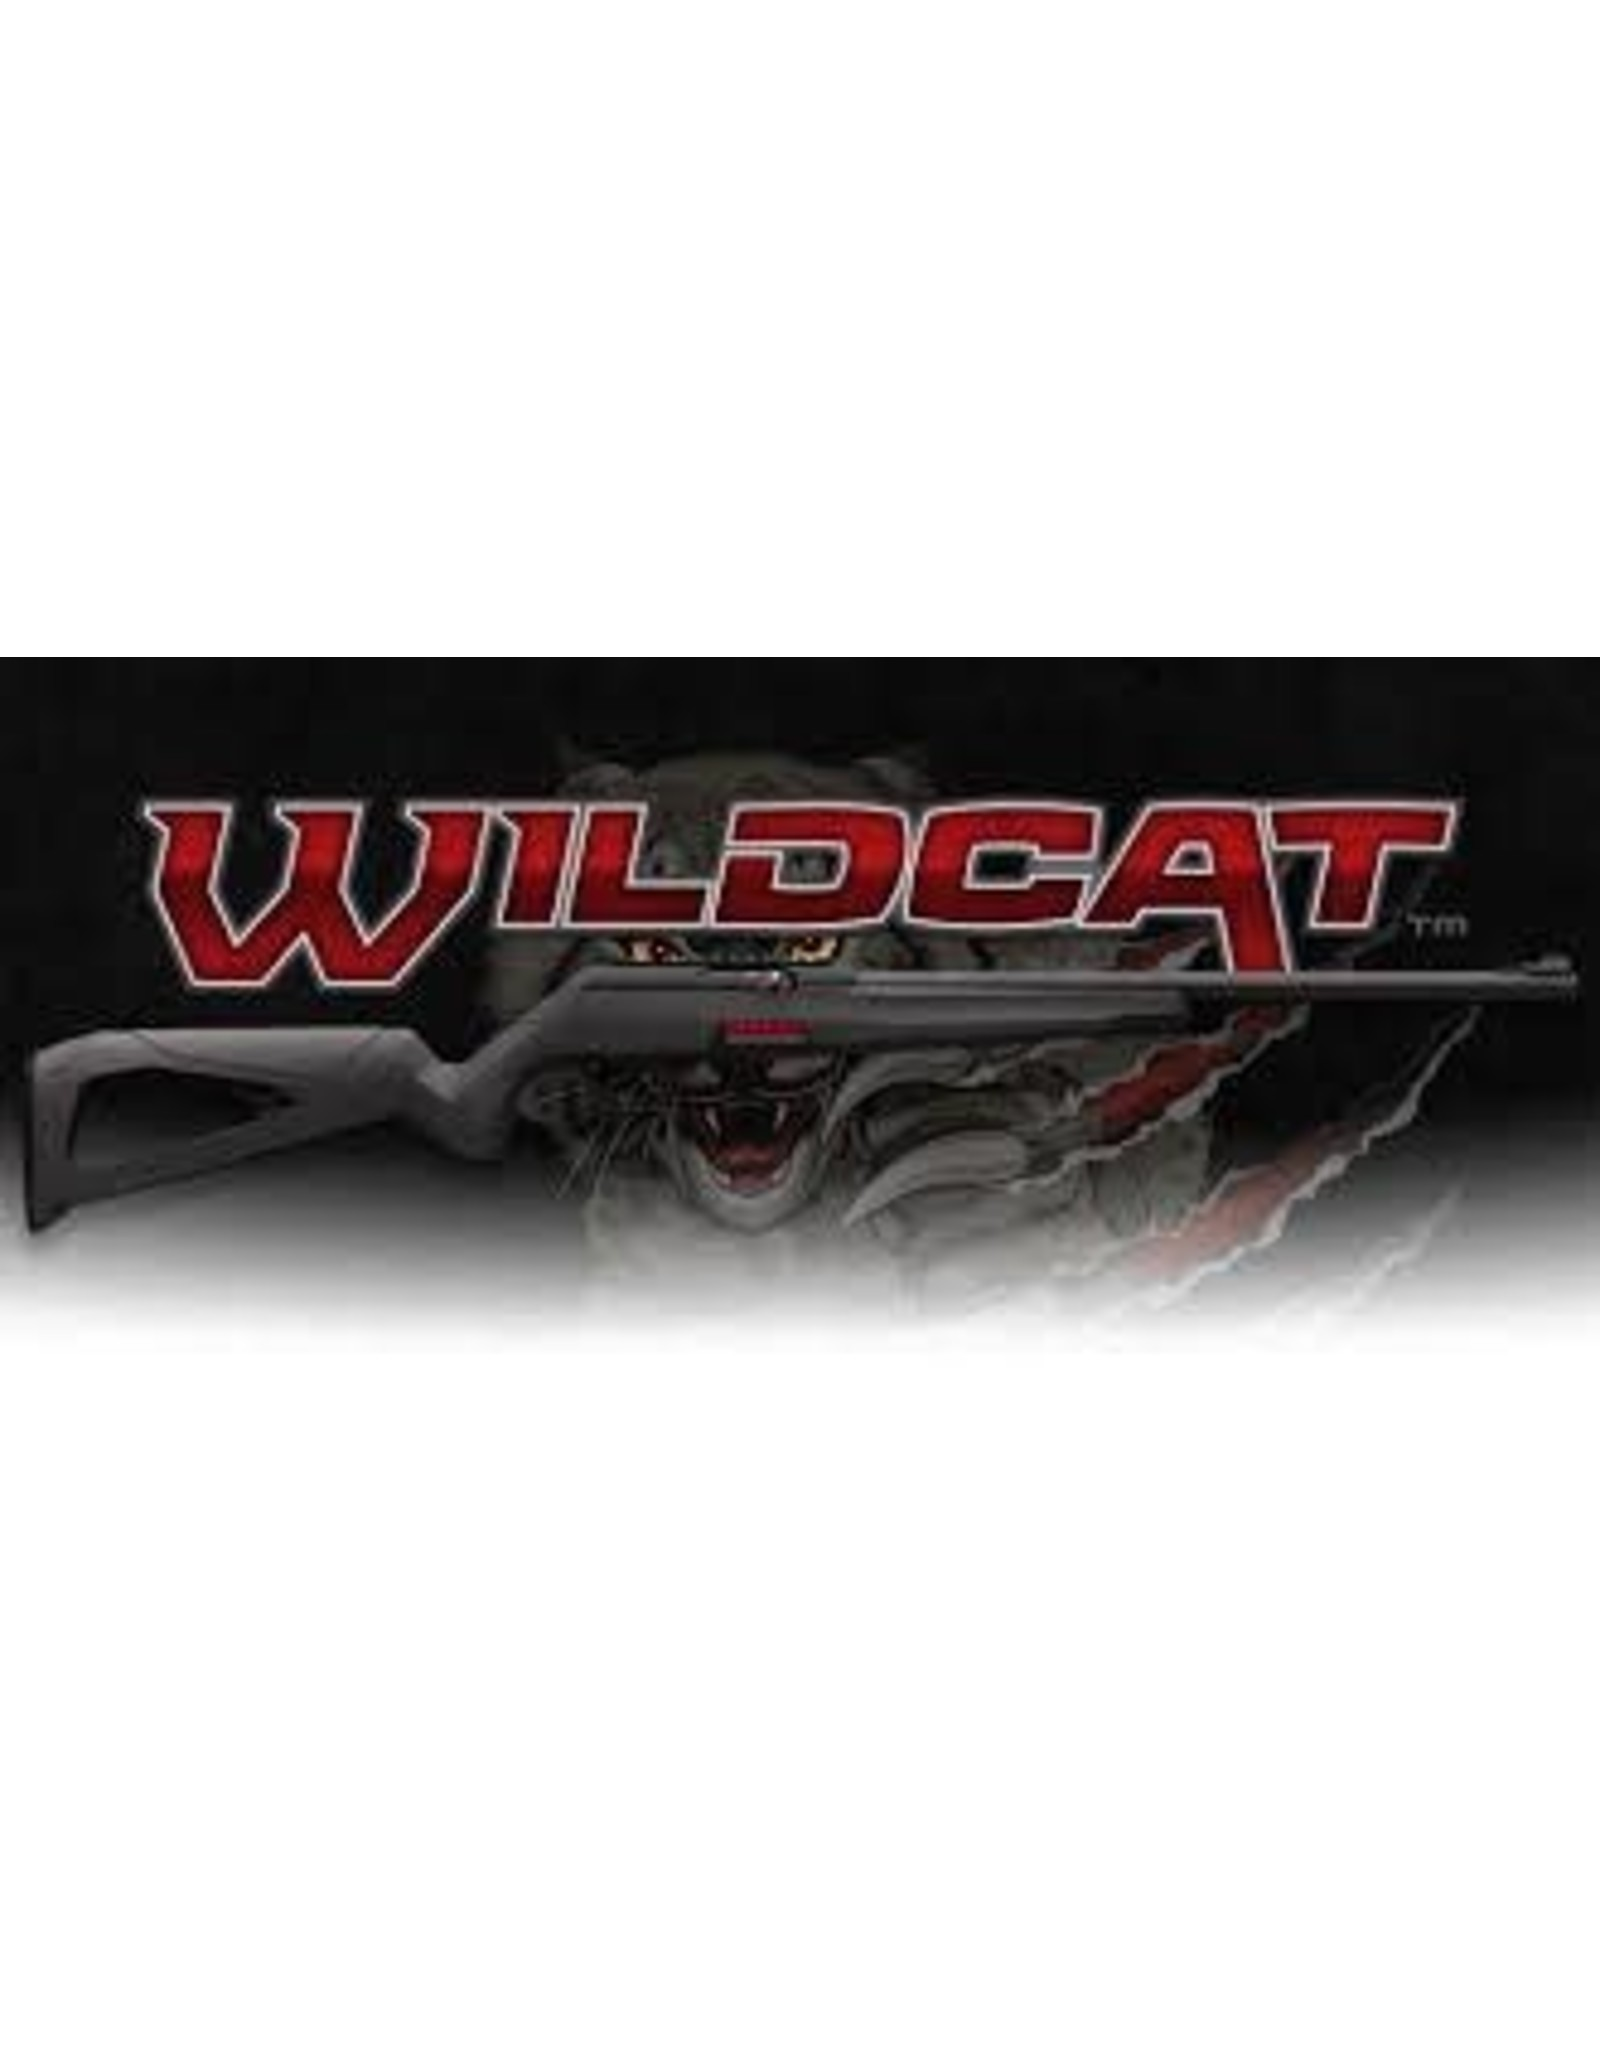 WINCHESTER REPEATING ARMS WINCHESTER WILDCAT .22 LR